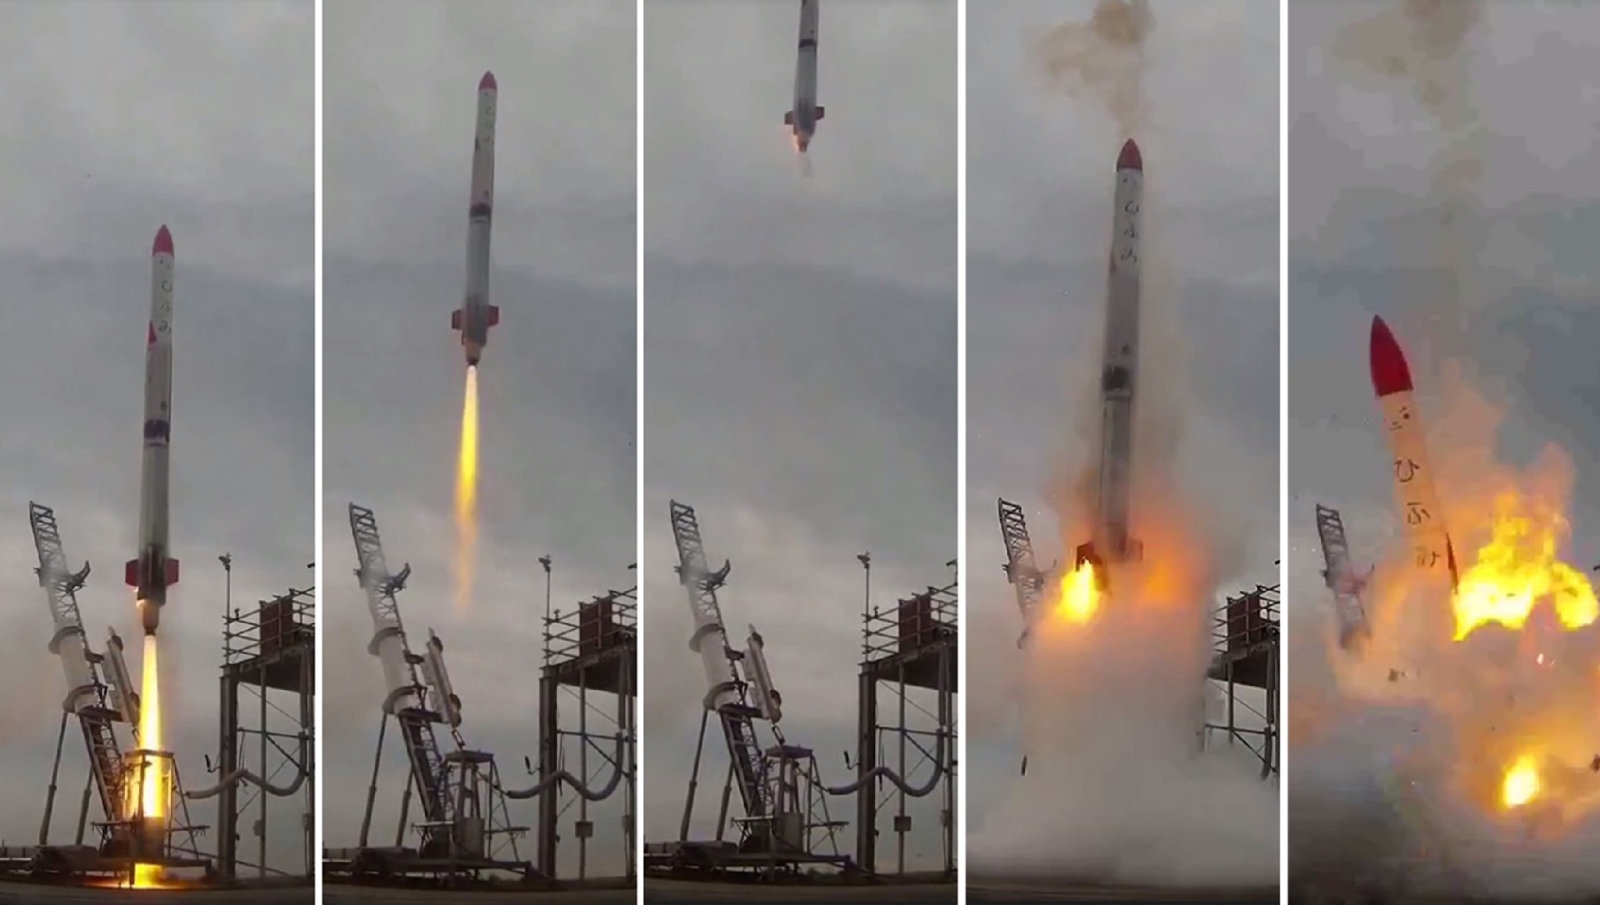 Japan's latest chance at private rocket launch ends in flames | DeviceDaily.com